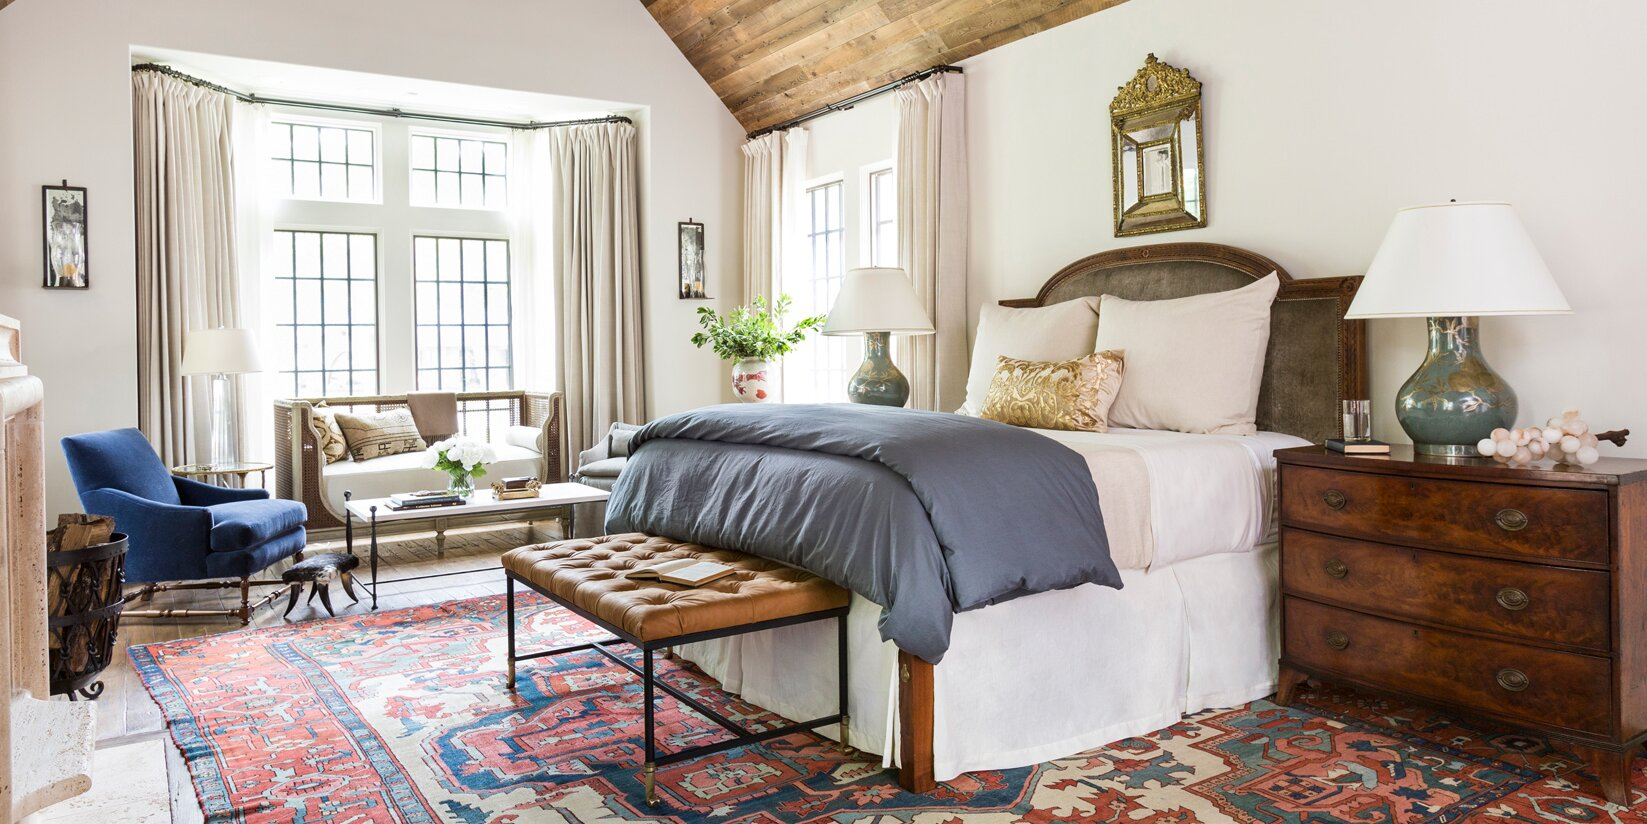 Where Should You Place an Area Rug in Your Bedroom?